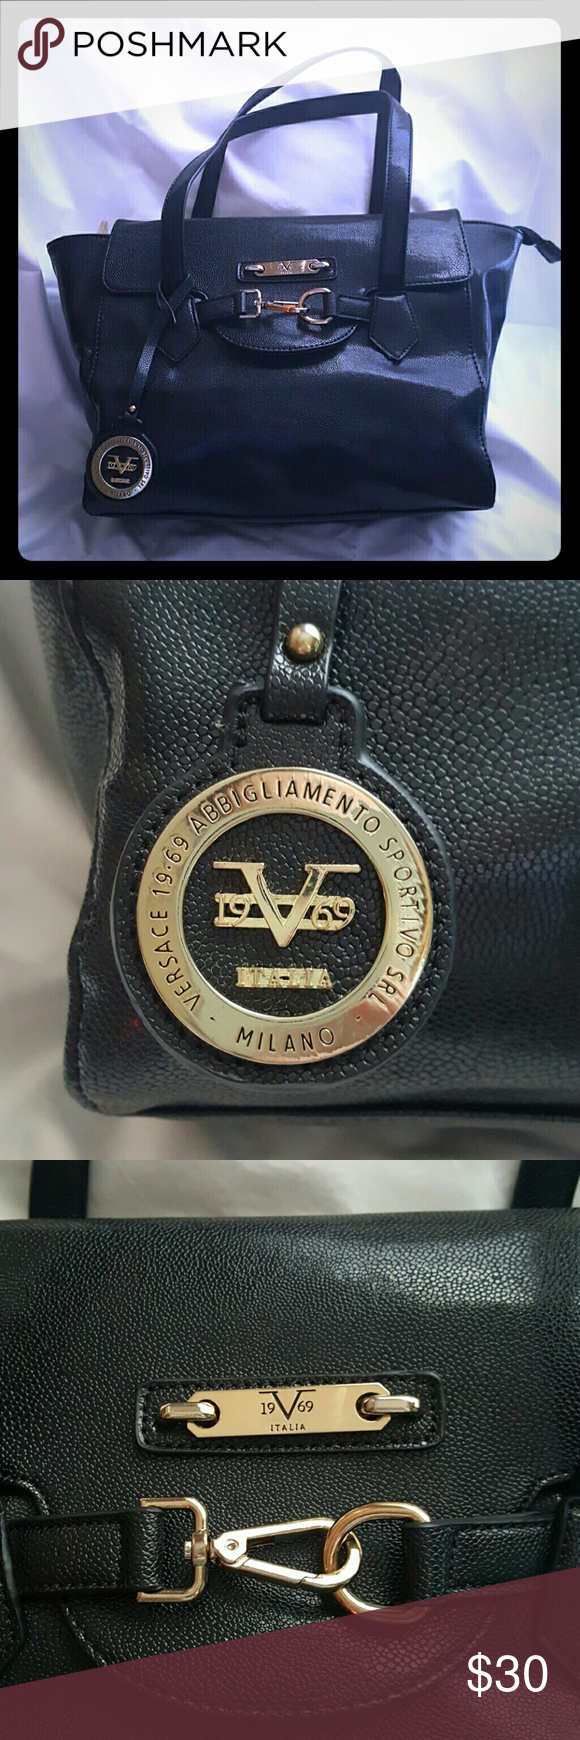 Black Versace KNOCK Off Black Versace, i dont think its real bc the date is 1969 and Versace started in 73 so im not trying to fool anyone. Good bag just not my style, plastic still on zipperss, zips shut and top fastens over with pockets inside and out. Versace (FAKE)  Bags